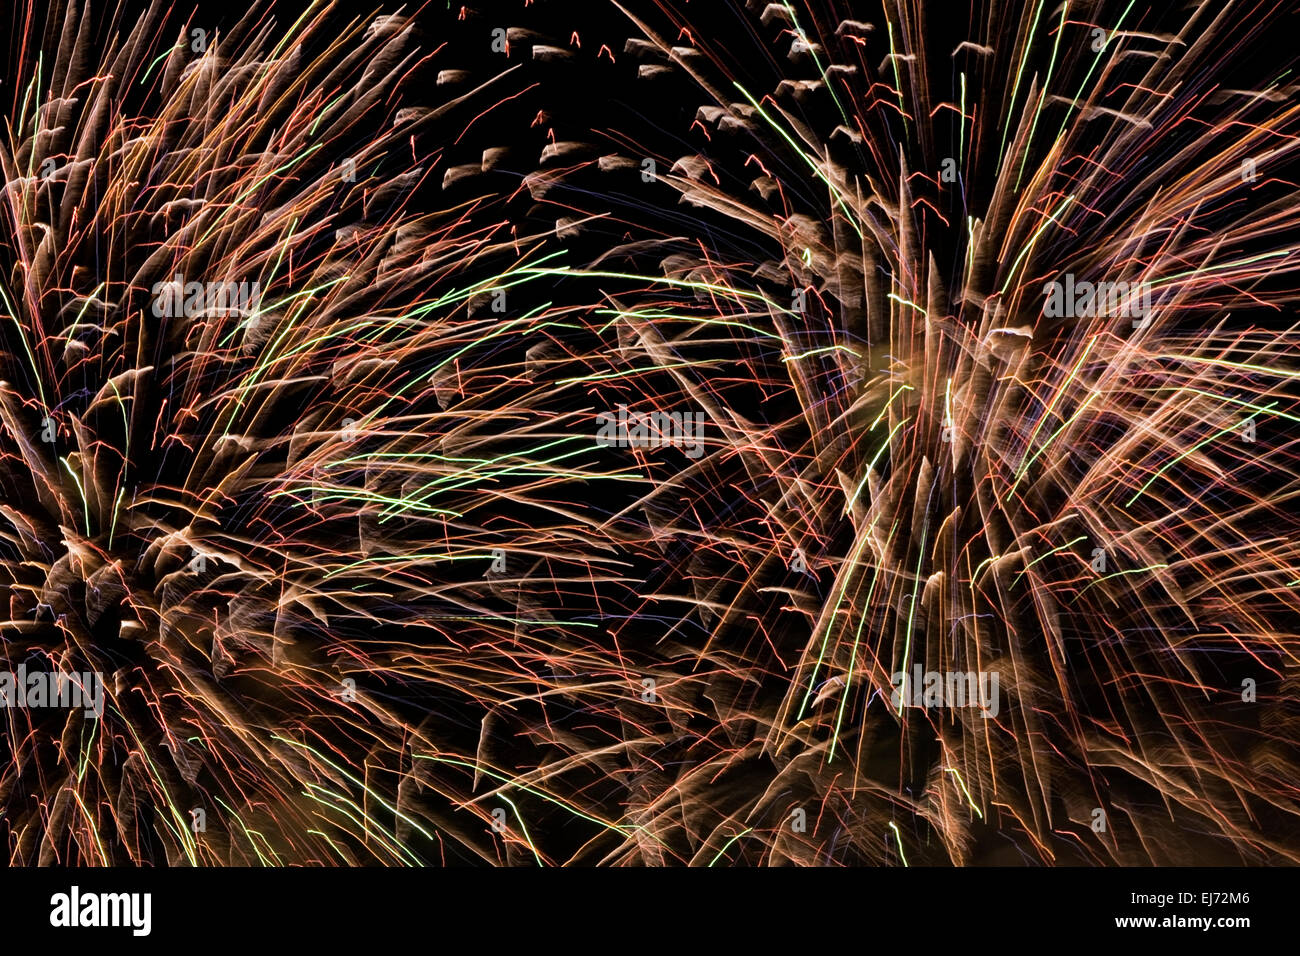 Red, orange, green and purple fireworks in the night sky, Montreal, Quebec, Canada - Stock Image